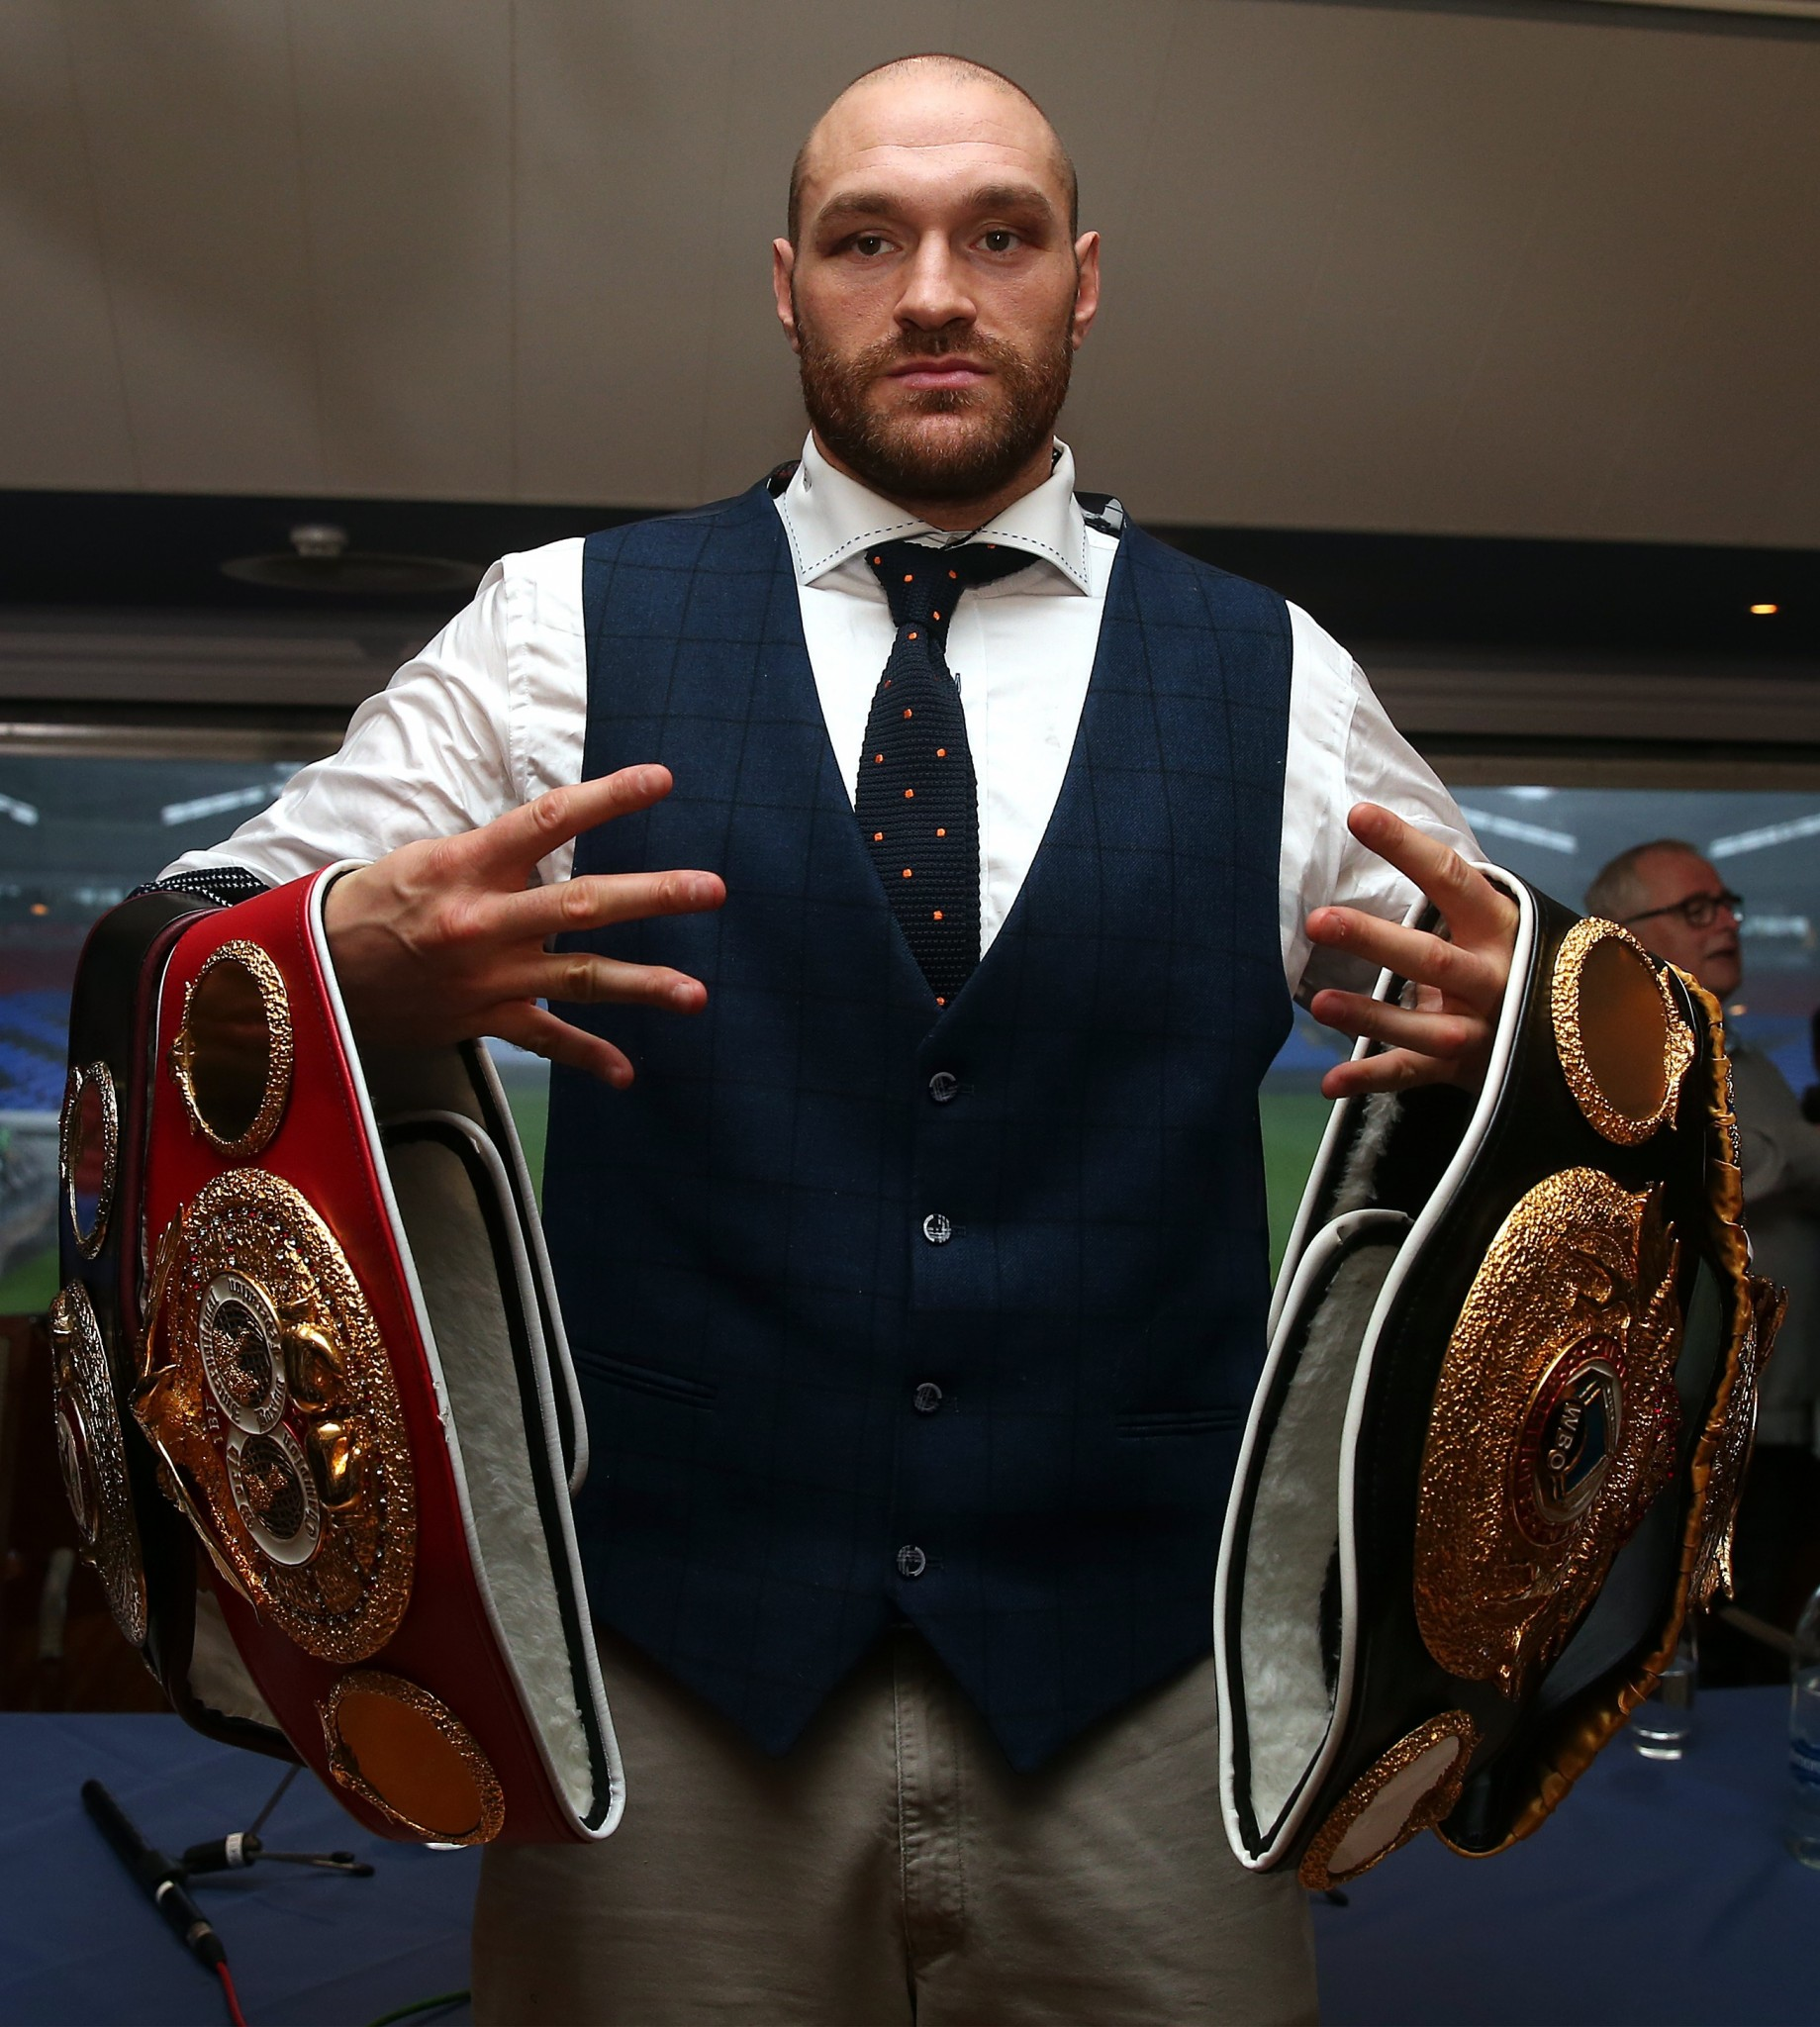 Tyson Fury lost his heavyweight title after giving Wladimir Klitschko a re-match